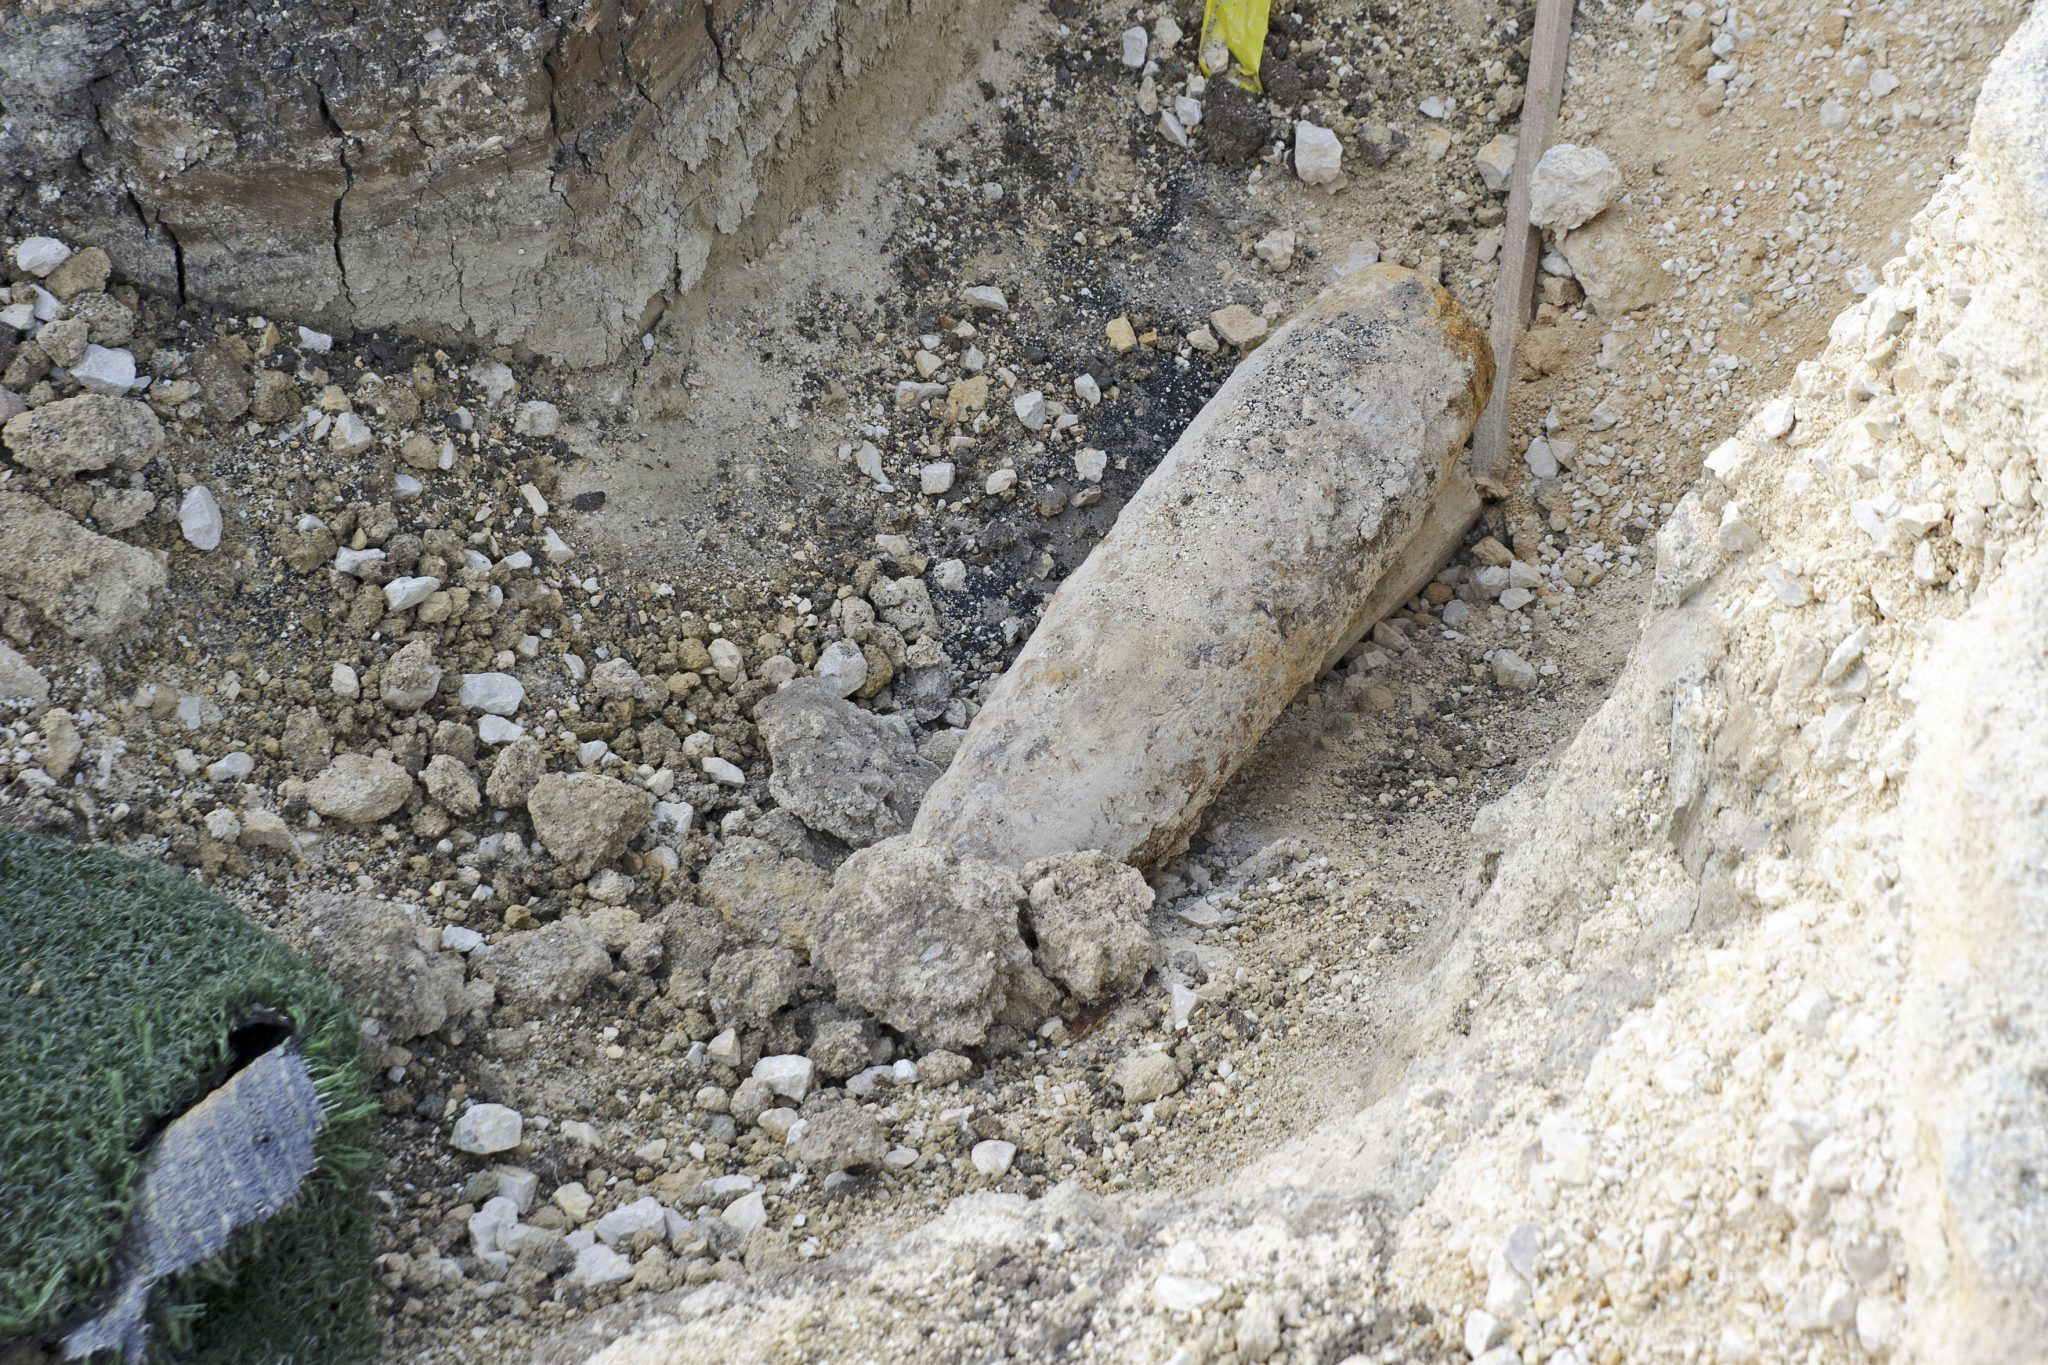 WW2 Bombs Defused in Evacuated Area of Buda post's picture